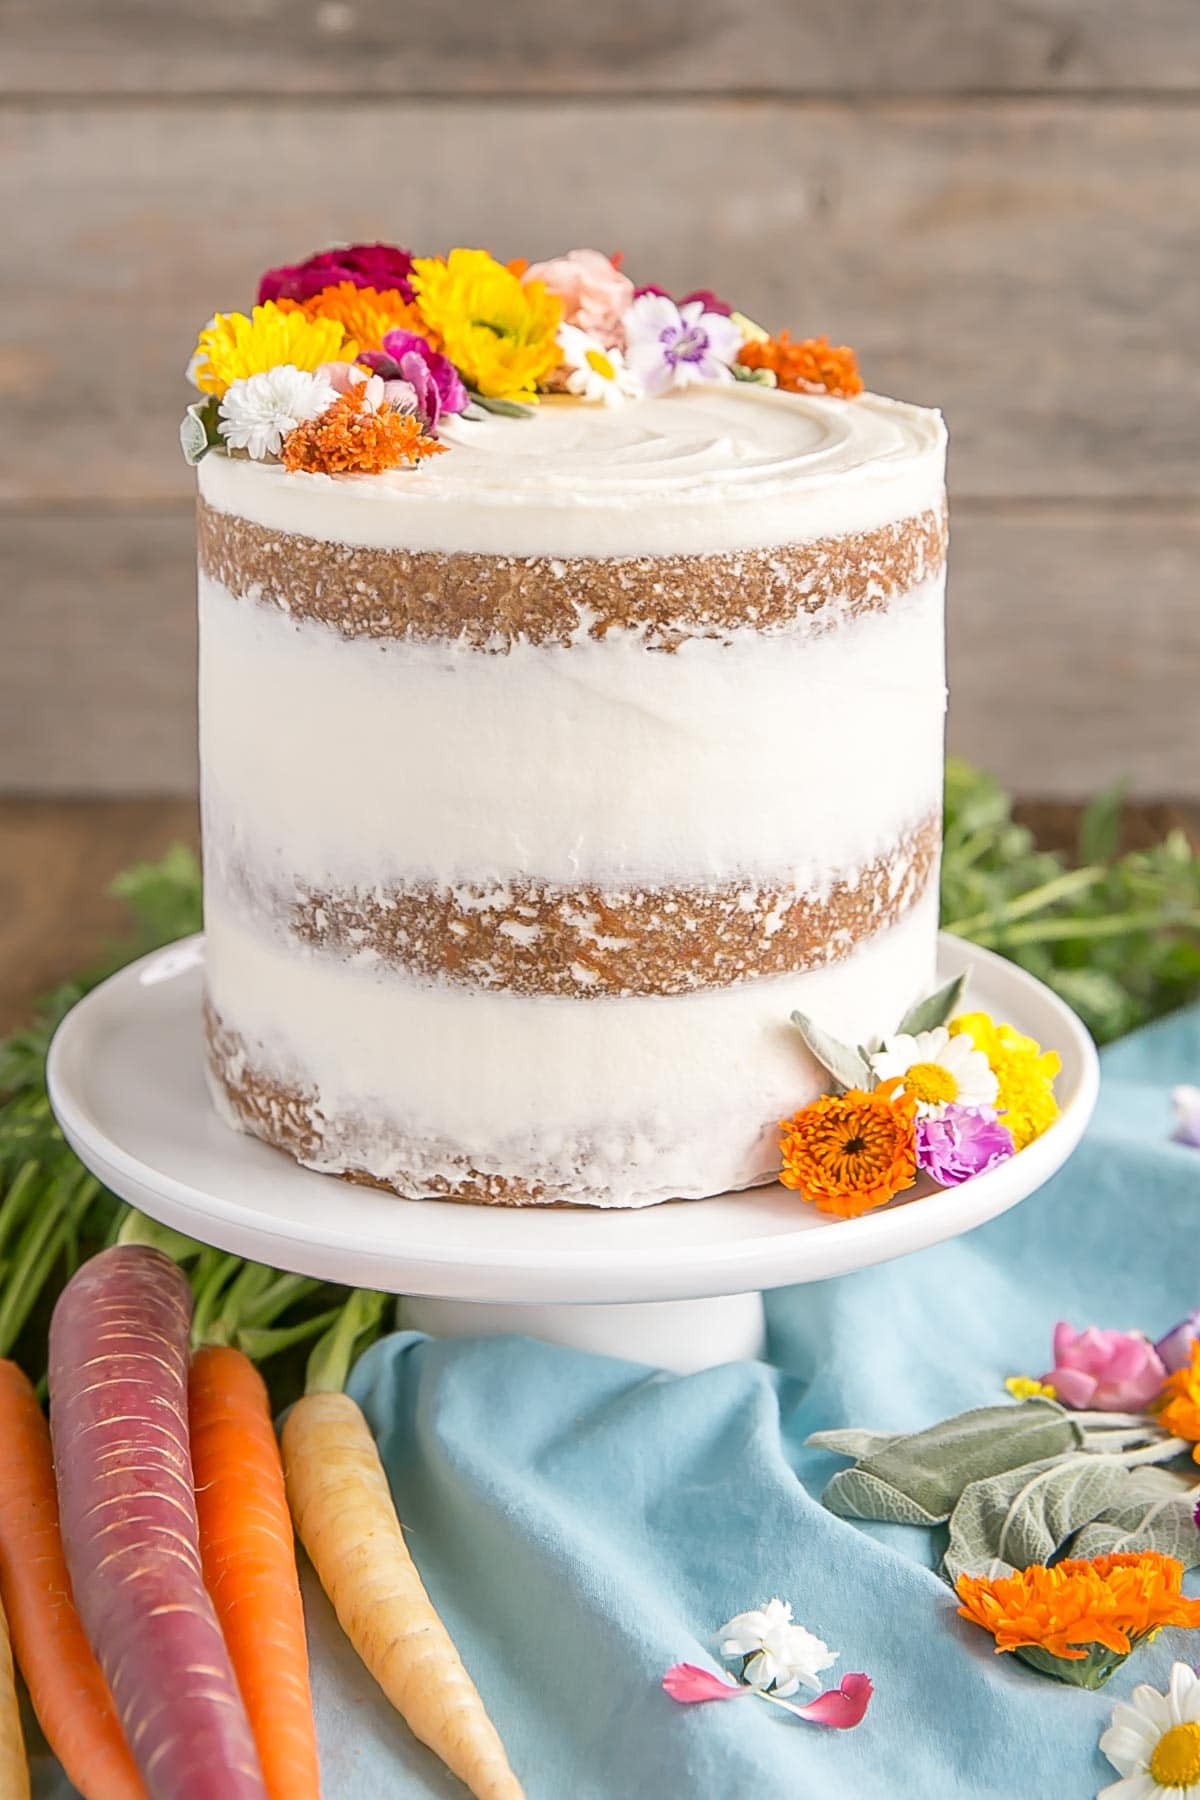 Carrot Cake with Cream Cheese Frosting | Liv for Cake